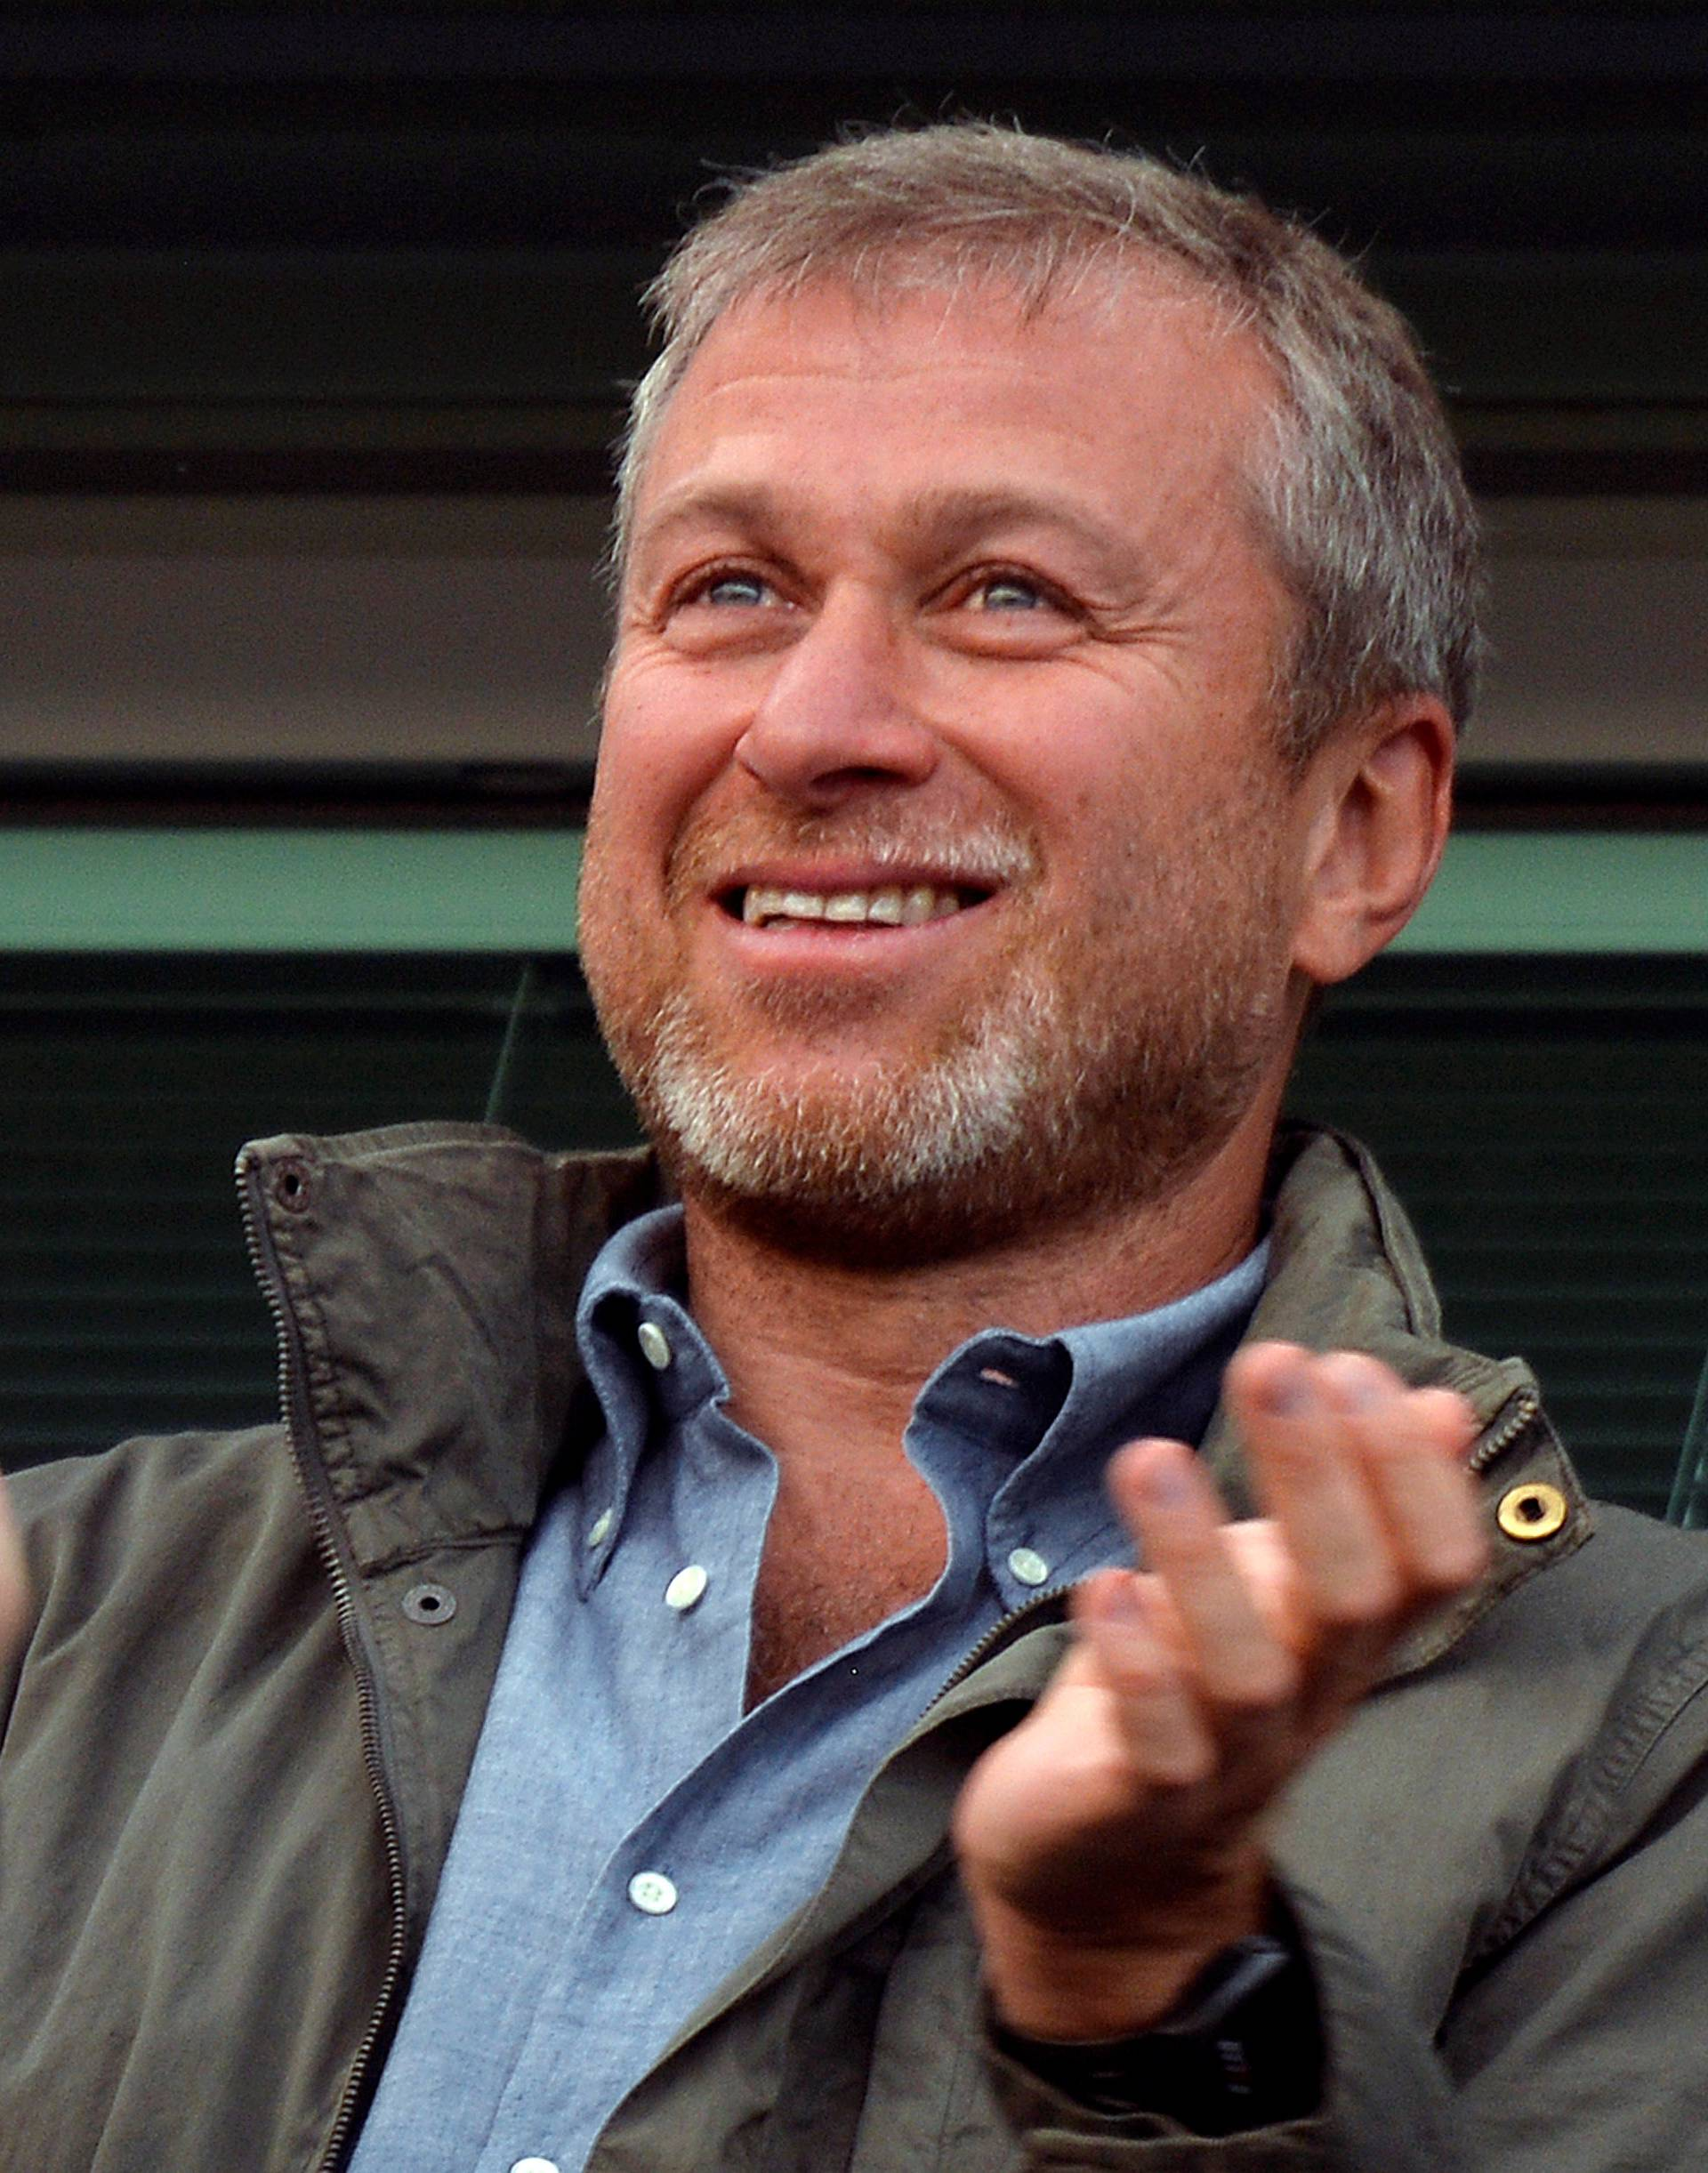 FILE PHOTO: Chelsea owner Roman Abramovich applauds after the English Premier League soccer match between Chelsea and Hull City in London